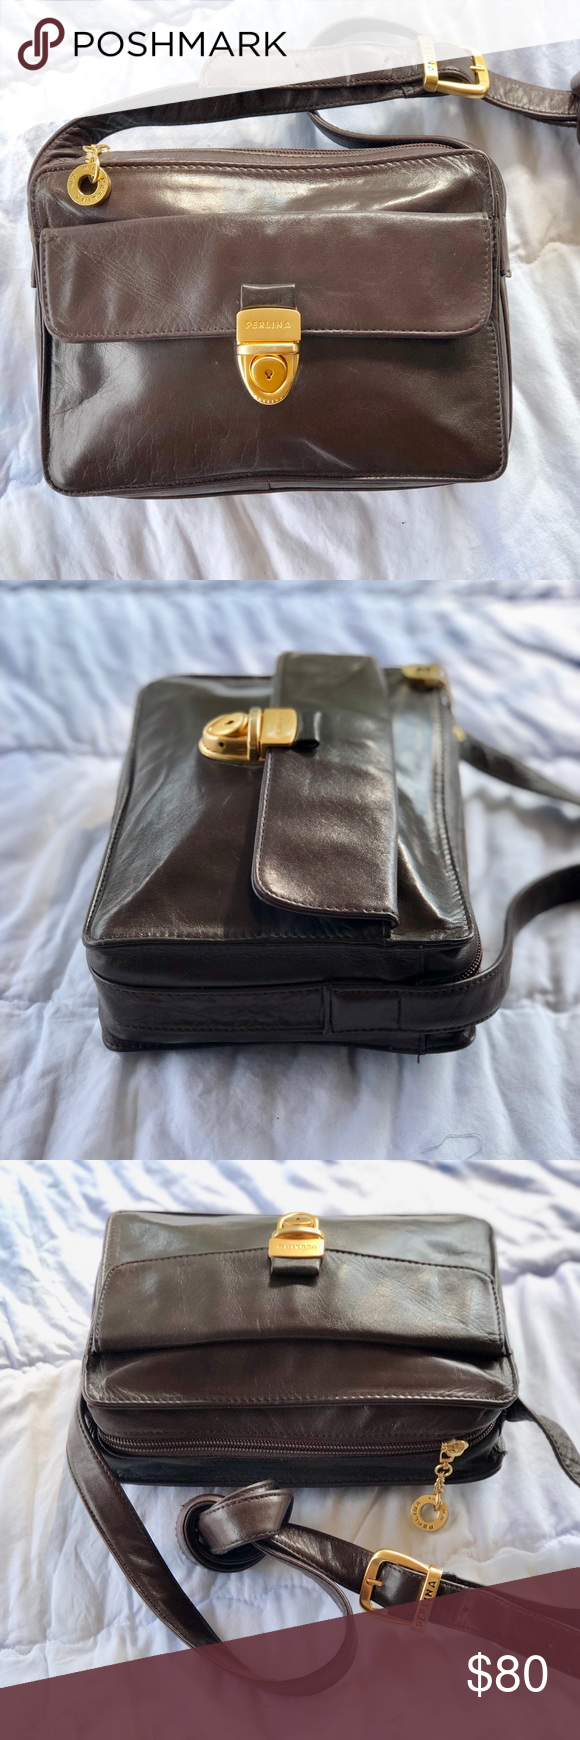 Perlina New York Brown Leather Crossbody Purse This Is A Beautiful That In Like Condition